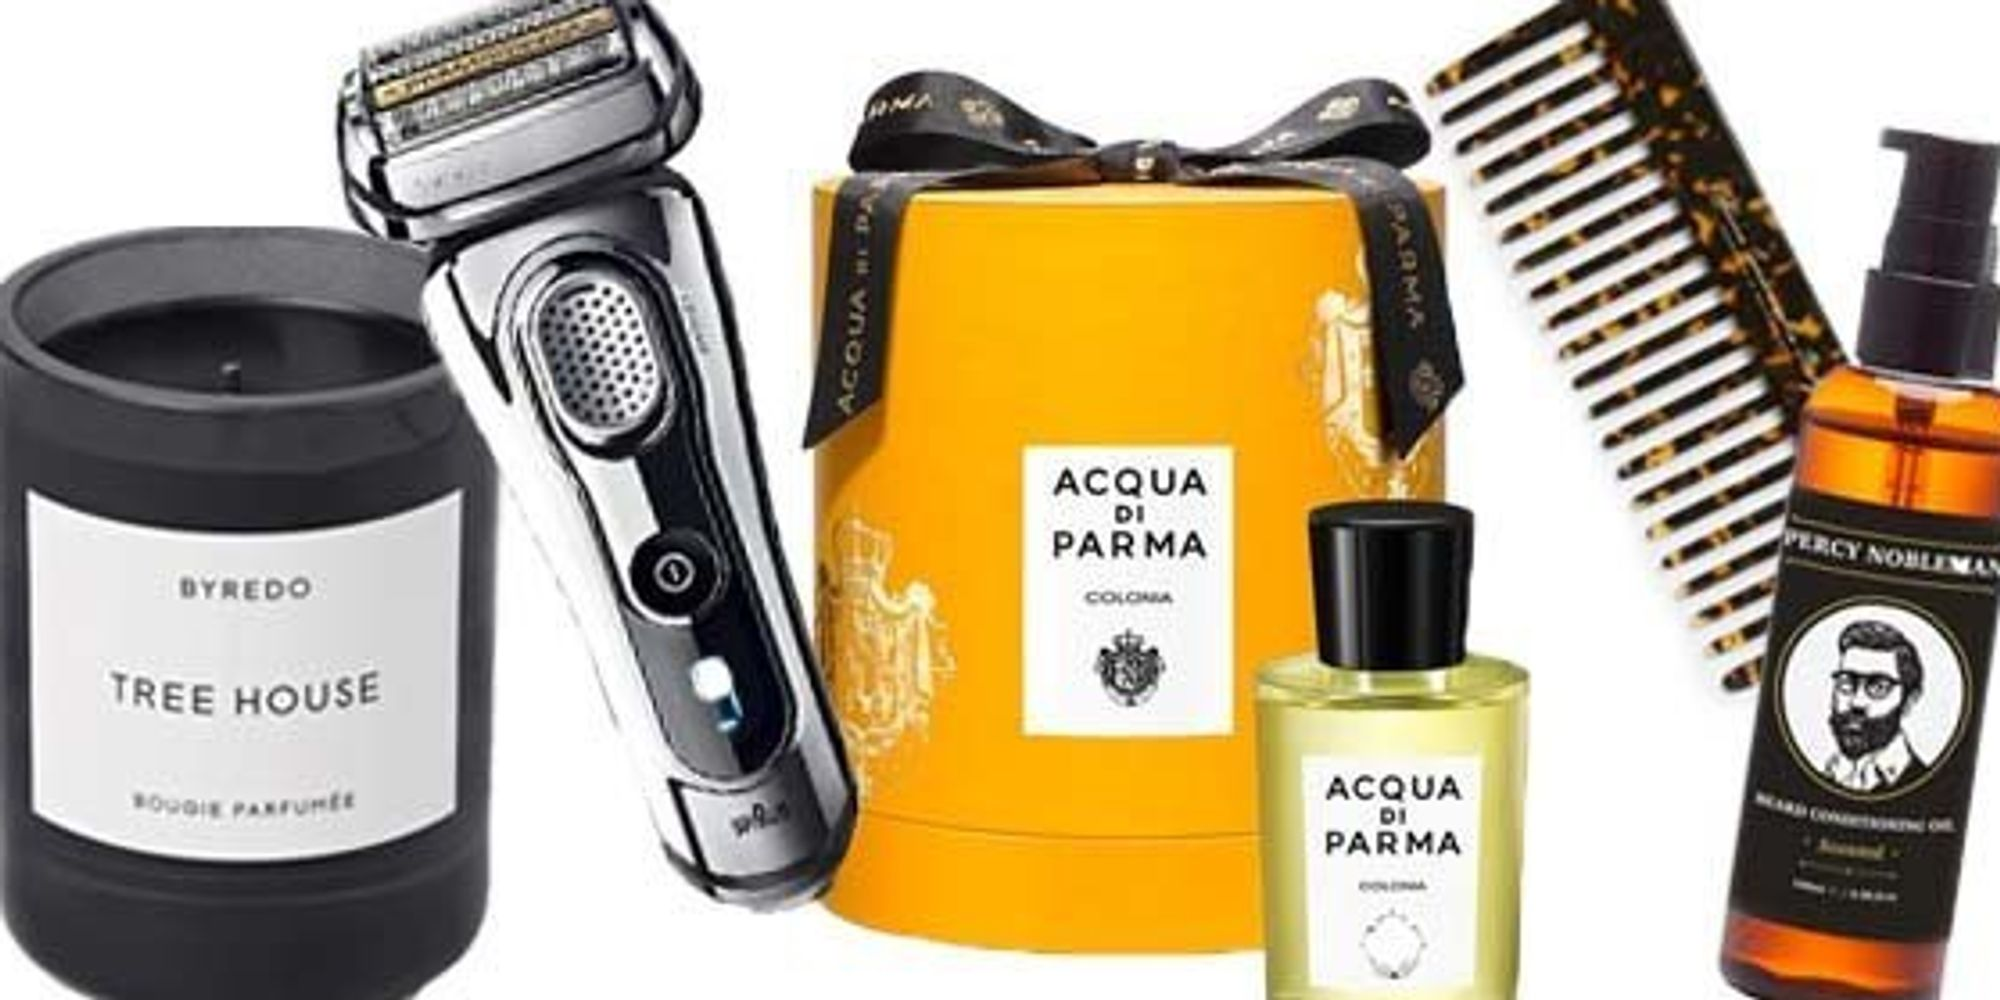 christmas gift ideas for him grooming products beard oil cologne and shaving sets huffpost uk. Black Bedroom Furniture Sets. Home Design Ideas